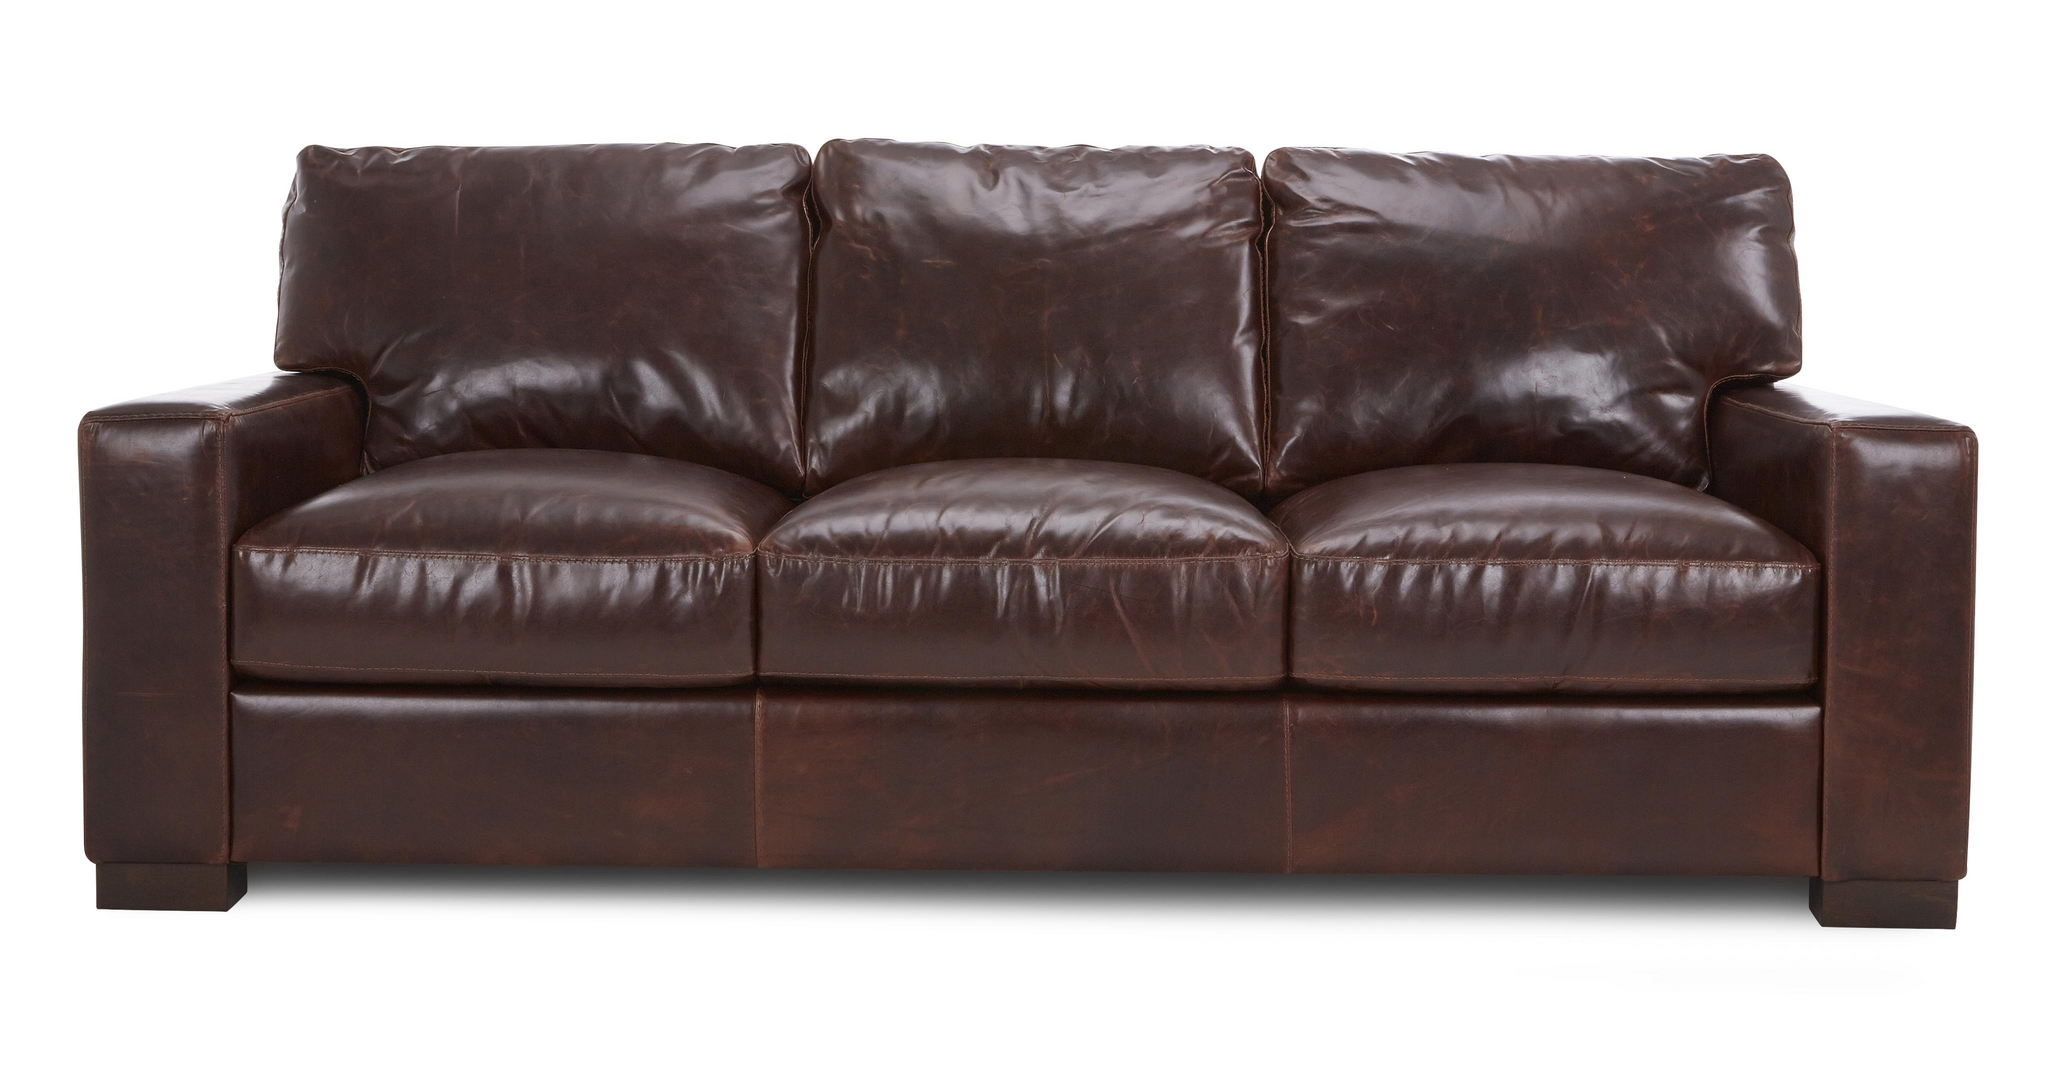 Dfs Brompton Mahogany Brown Leather 3 Seater Sofa Ebay